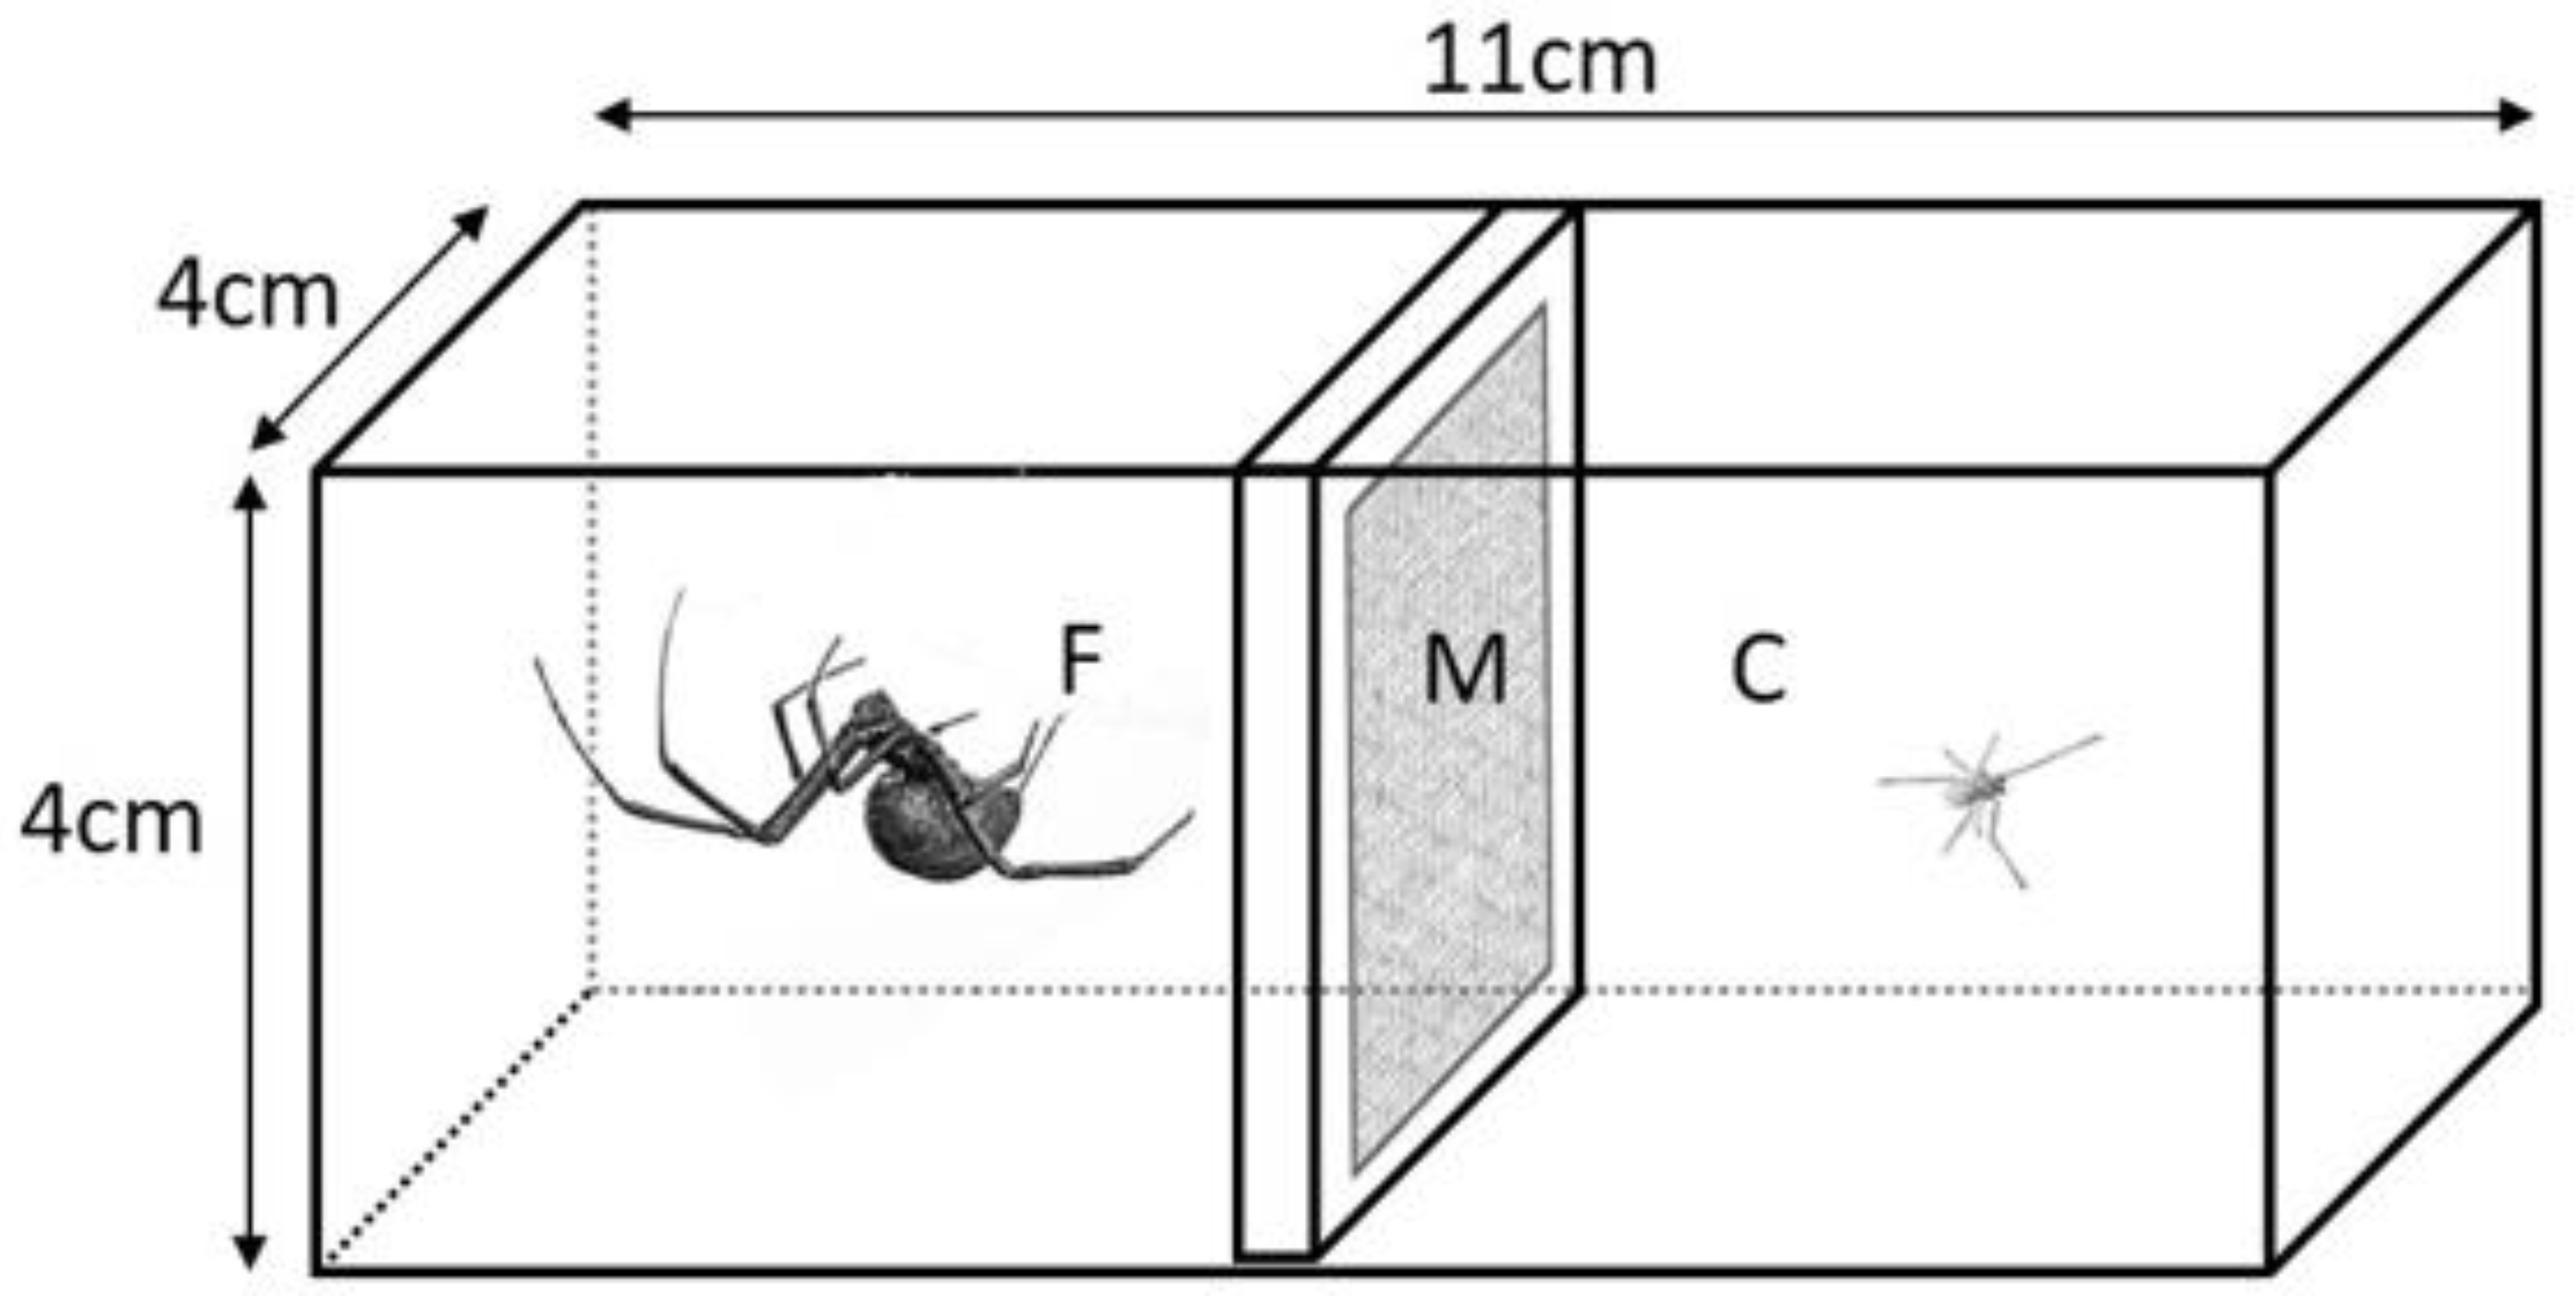 Representation of a rectangular plastic cage, bisected at its long axis, with a female spider on one side and a male spider on the other side.